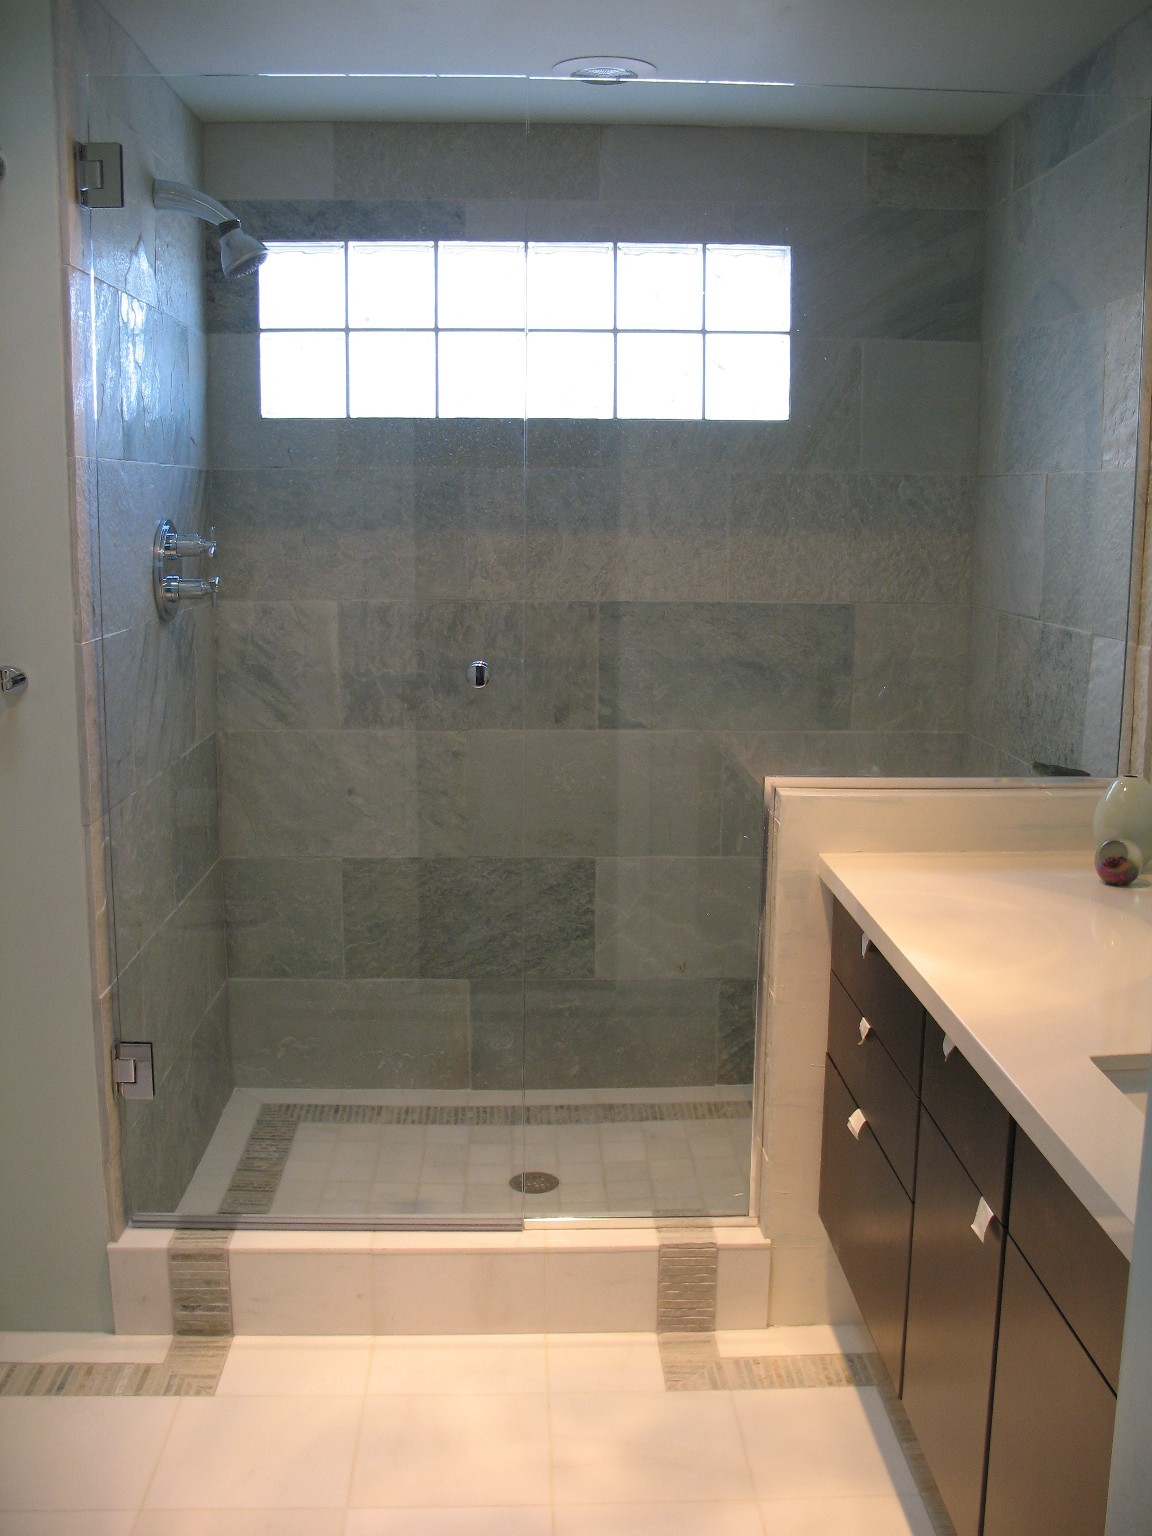 Tile Designs For Bathroom Ideas ~ Shower tile ideas on a budget